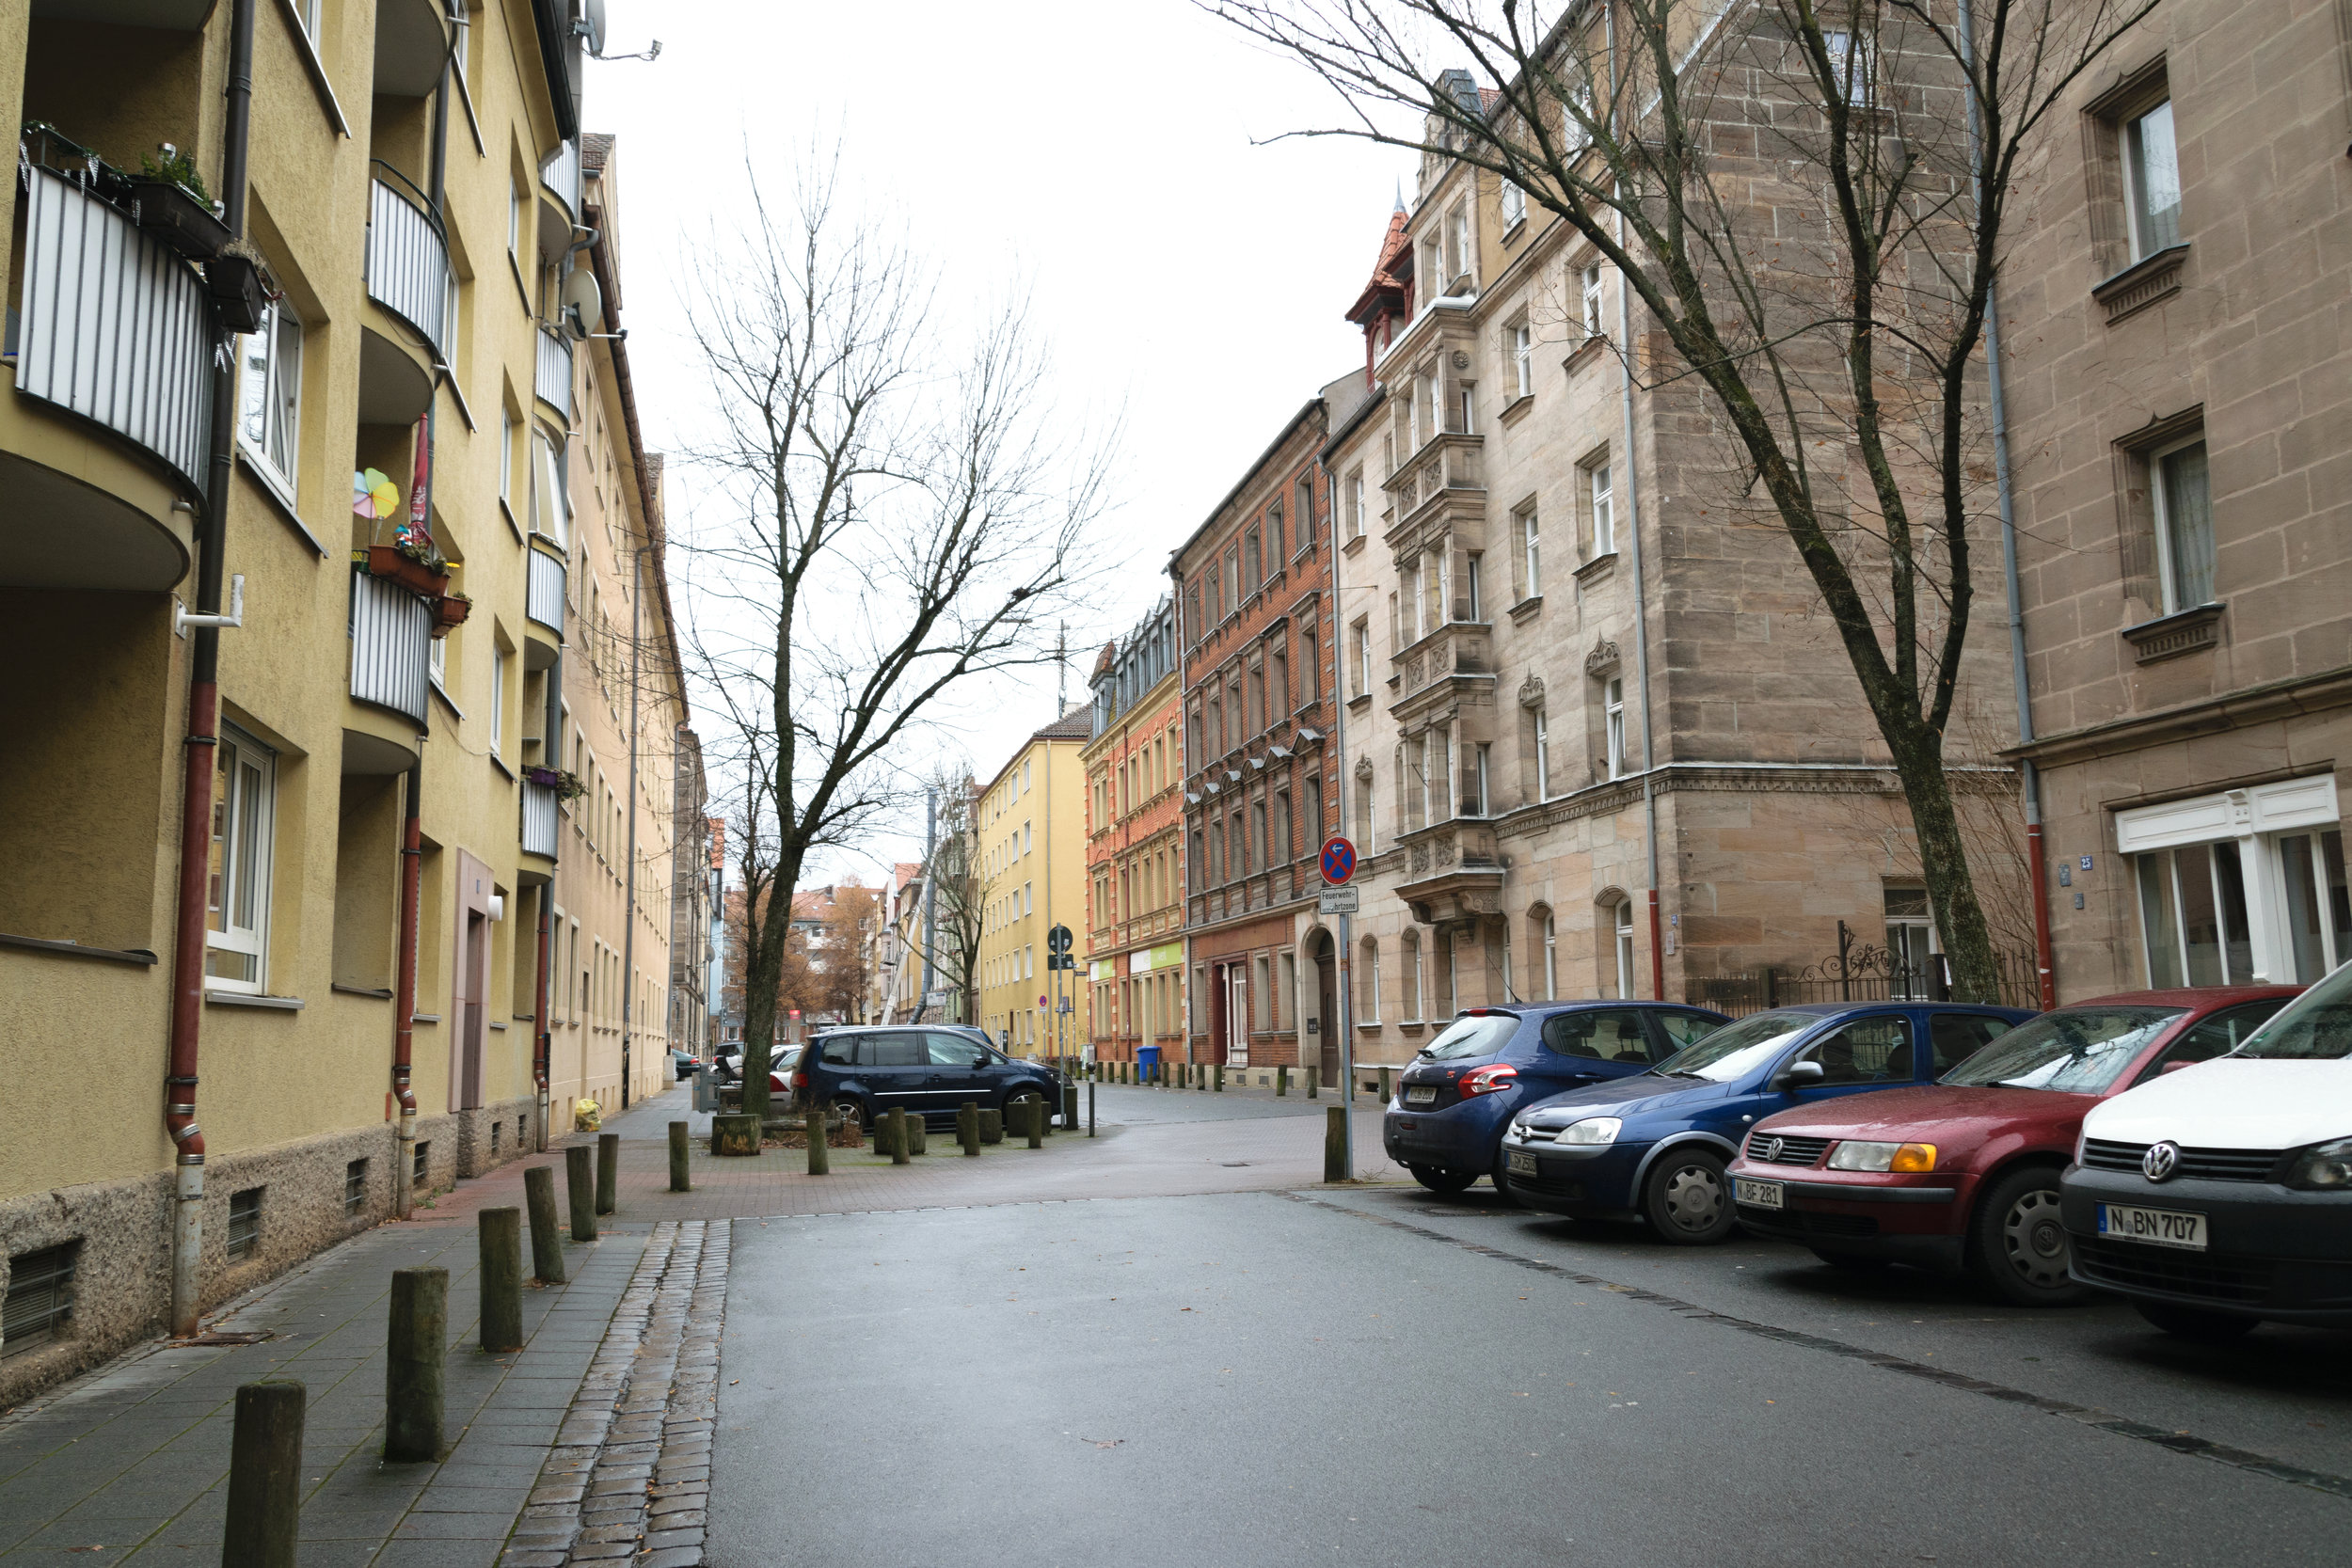 without a straight path, cars must slow down to maneuver through the narrow street